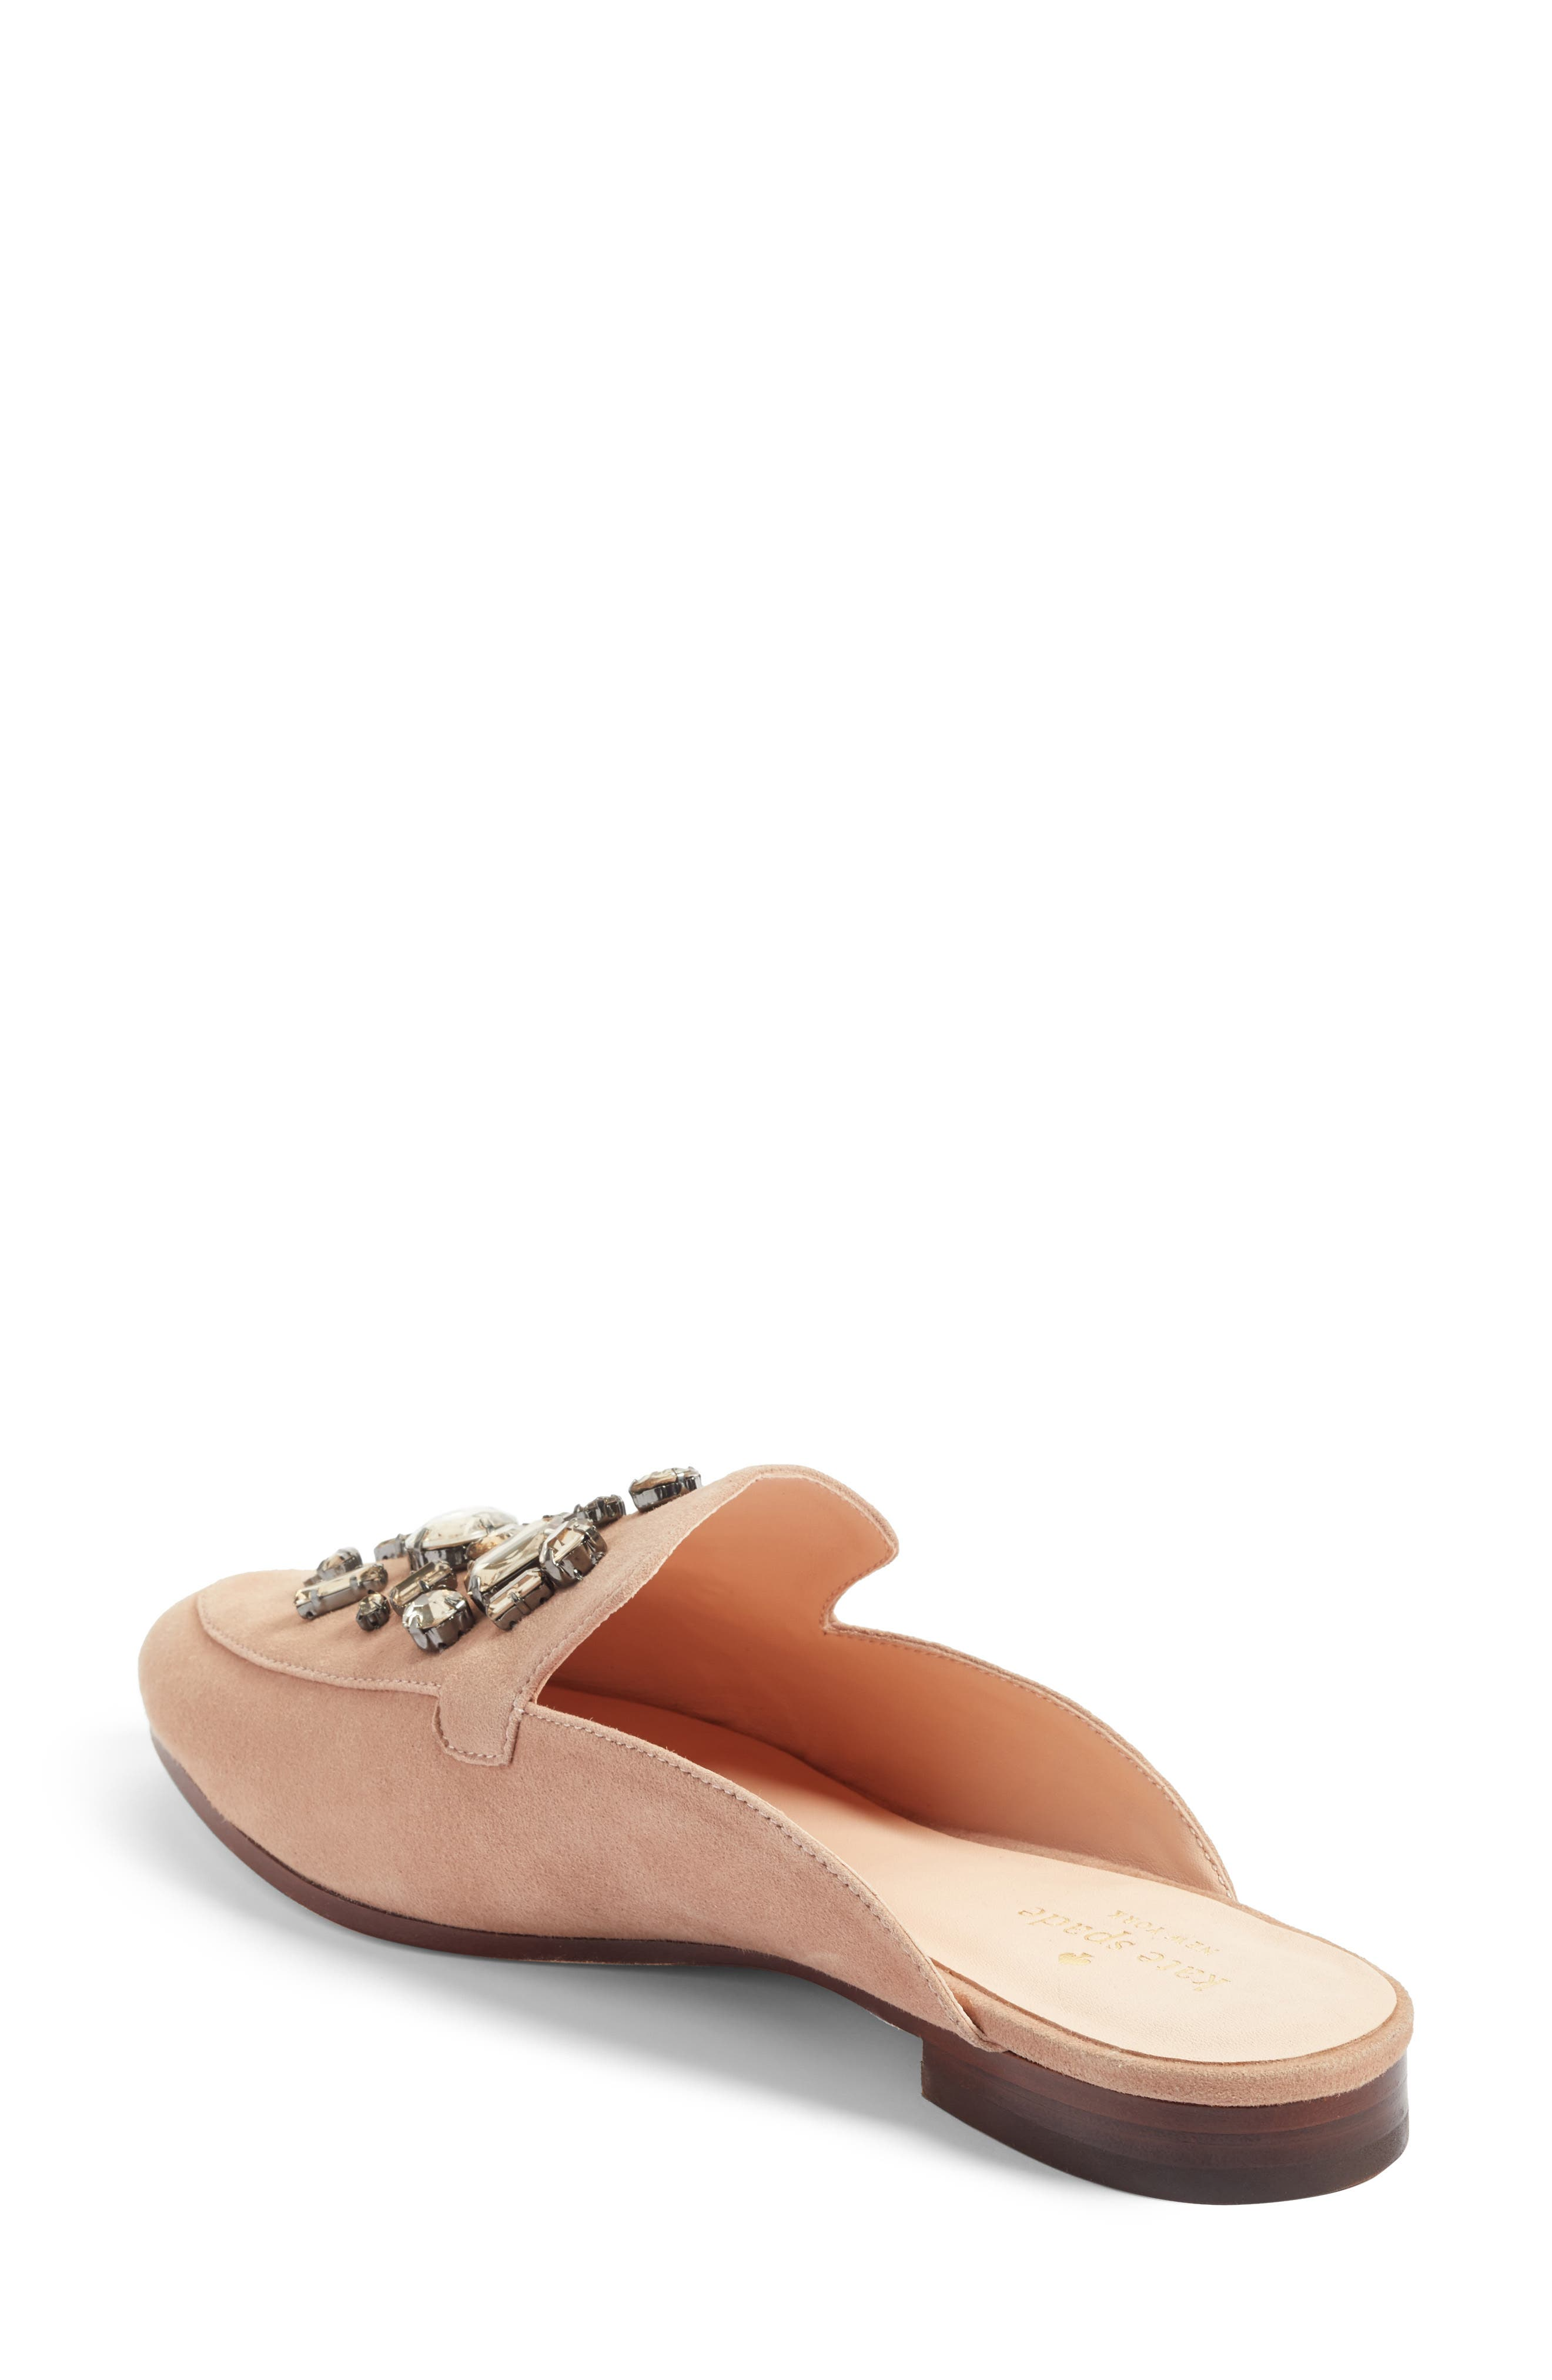 cavell loafer mule,                             Alternate thumbnail 2, color,                             250